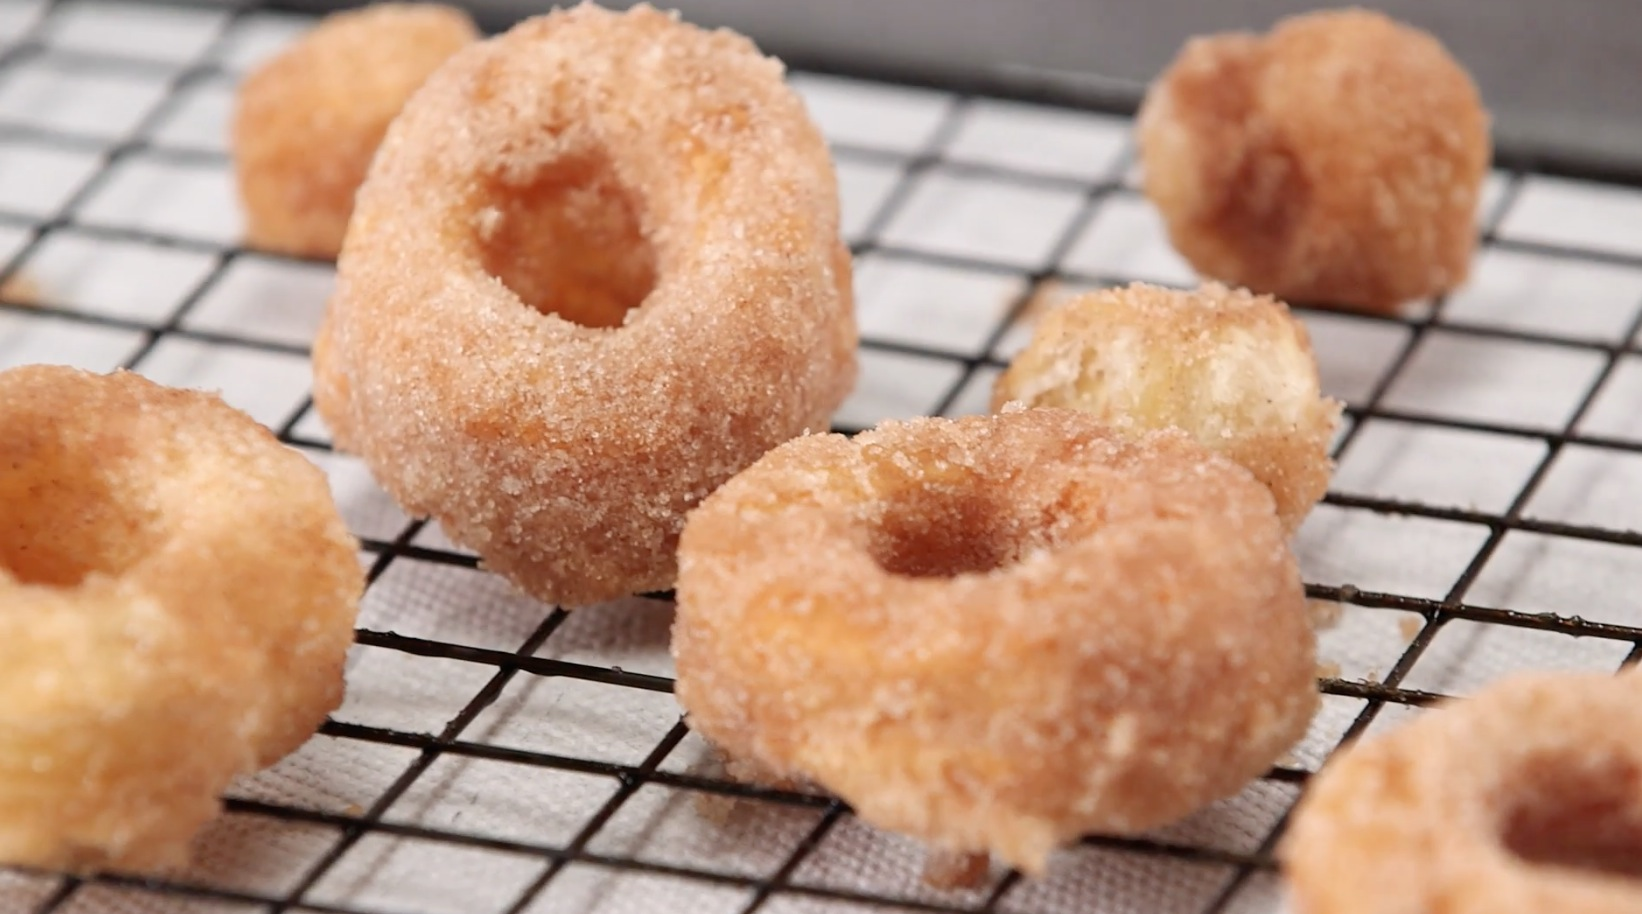 Making Puff Pastry Donuts Is Easy With This Mad Genius Tip